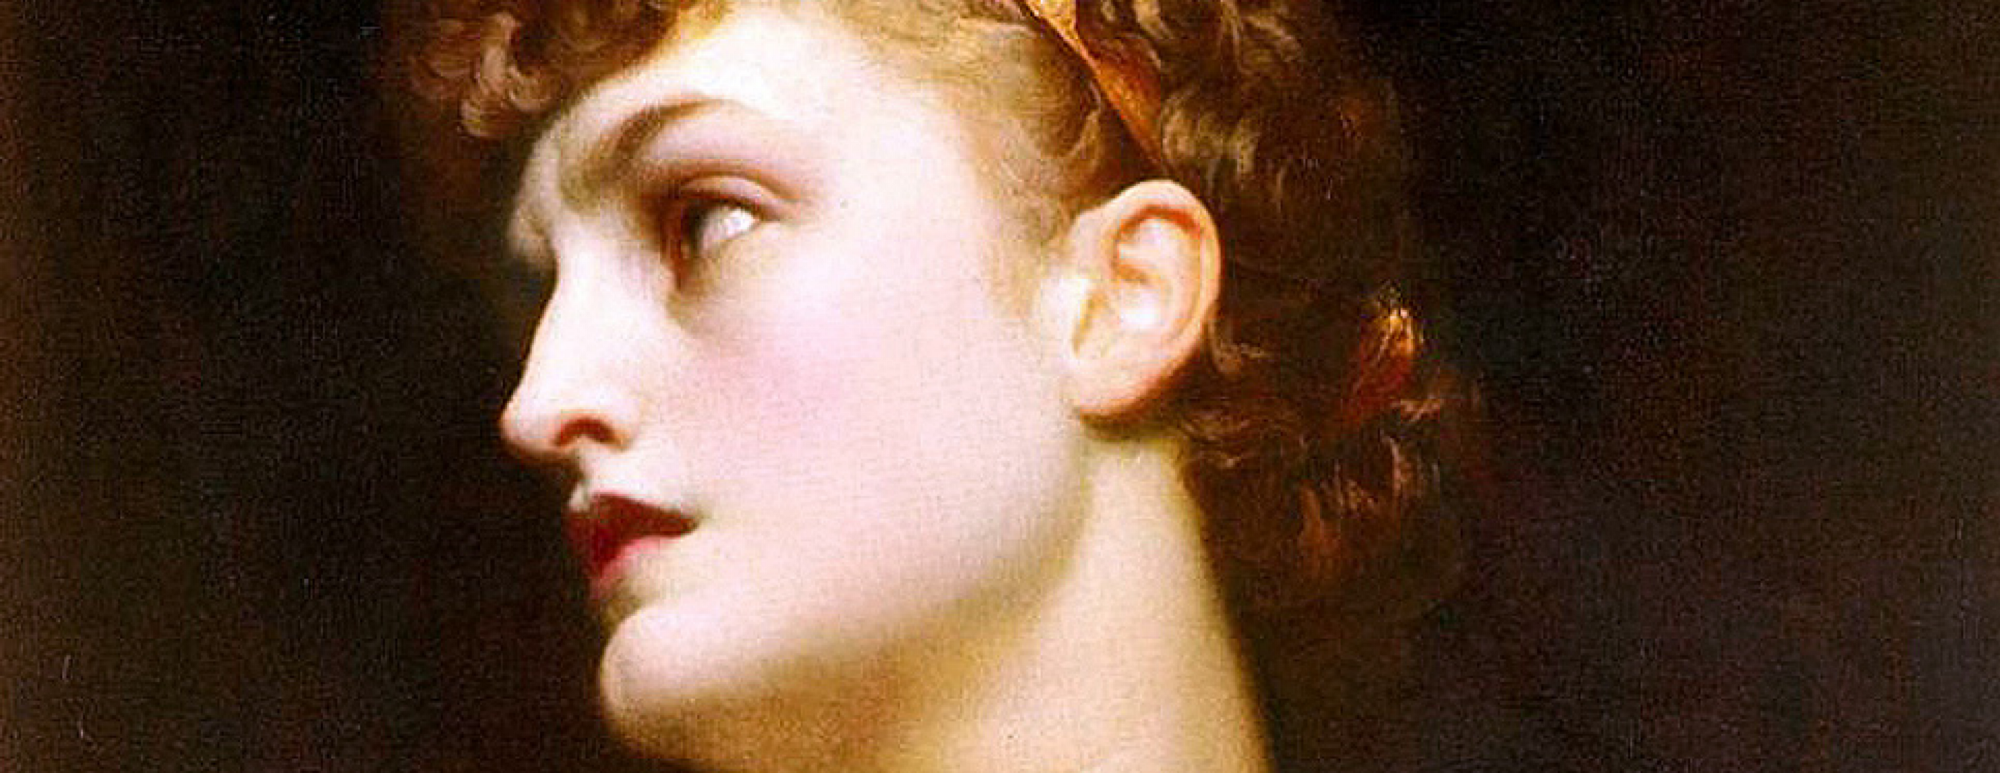 comparison between the characters of antigone and A character comparison: nora vs antigone in the novels a doll's house and antigone, ibsen and sophocles respectively create two lead female characters, nora and antigone, who confront society's expectations of women in fundamentally different ways.